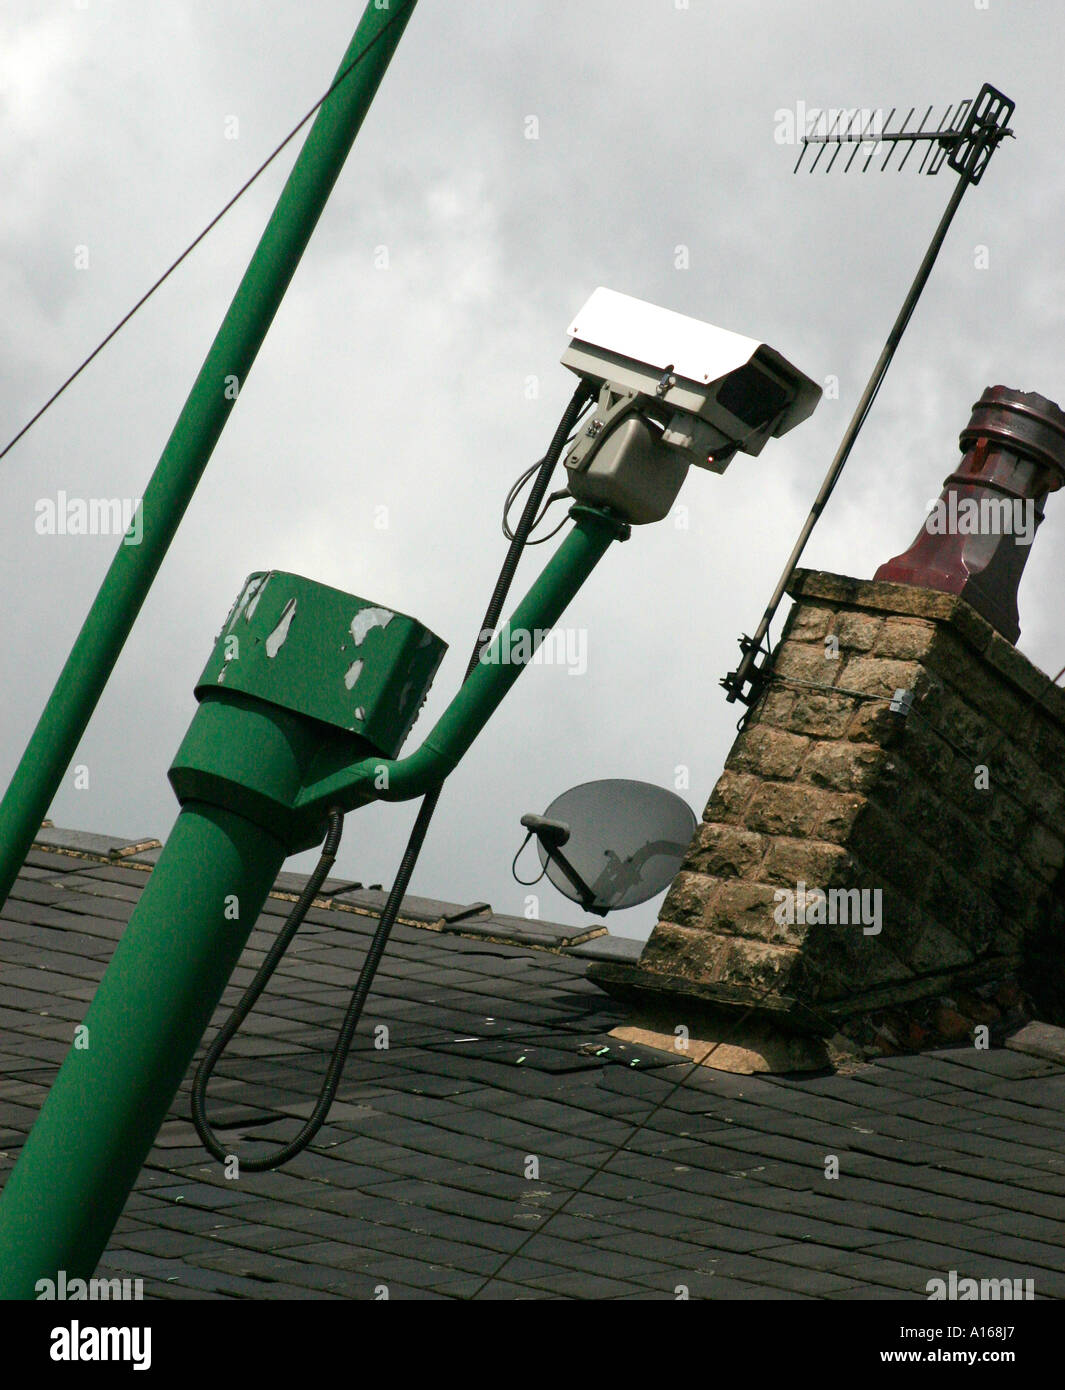 Closed circuit television camera or CCTV used for surveillance by the police in the UK - Stock Image